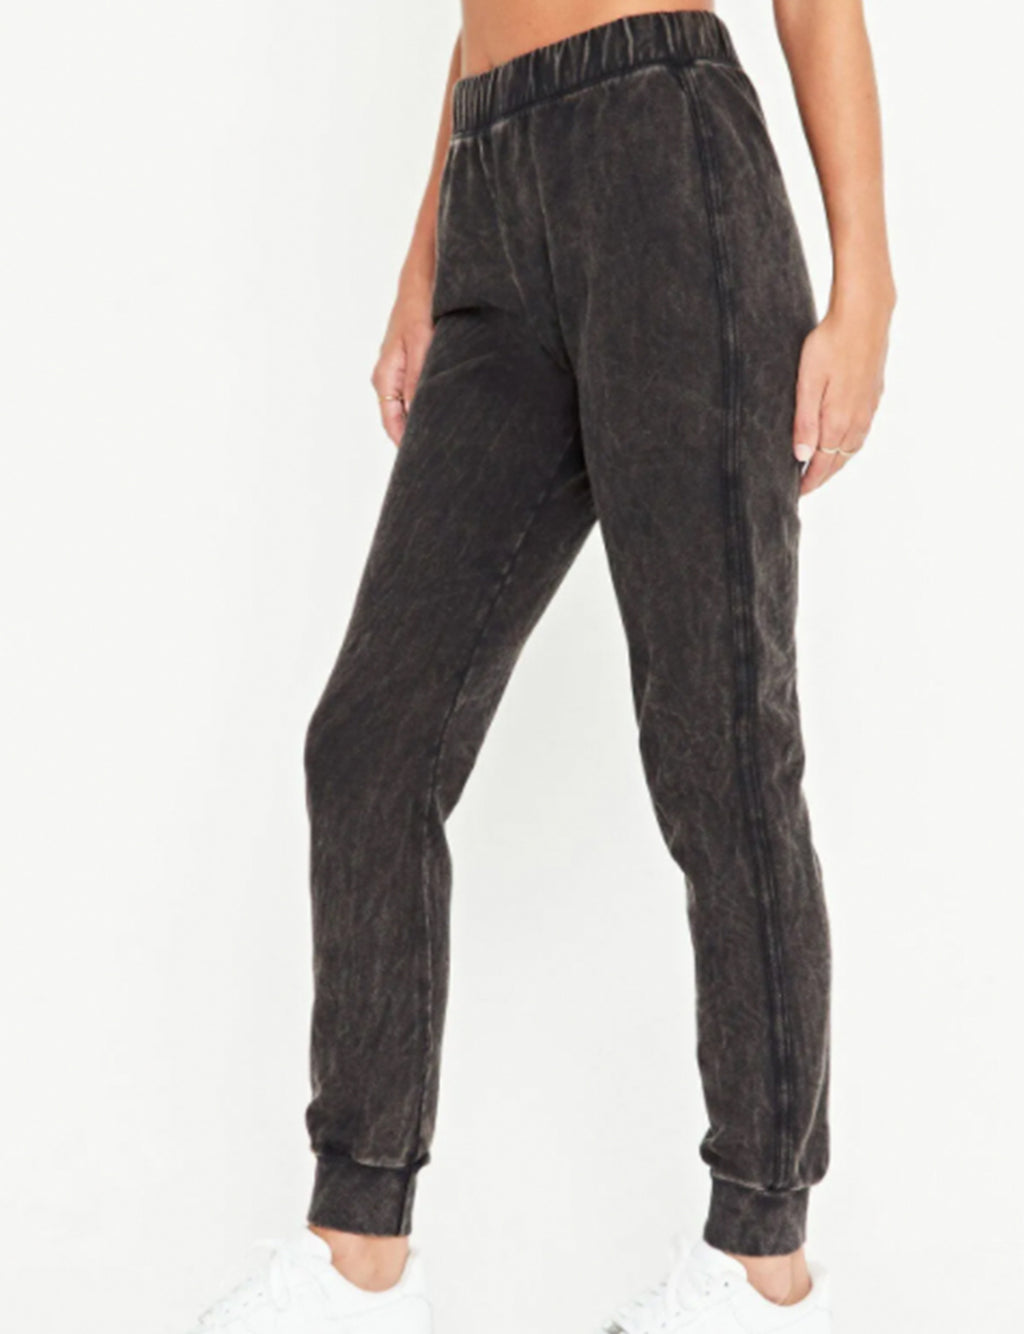 Daly Twill Stripe Pant in Washed Black